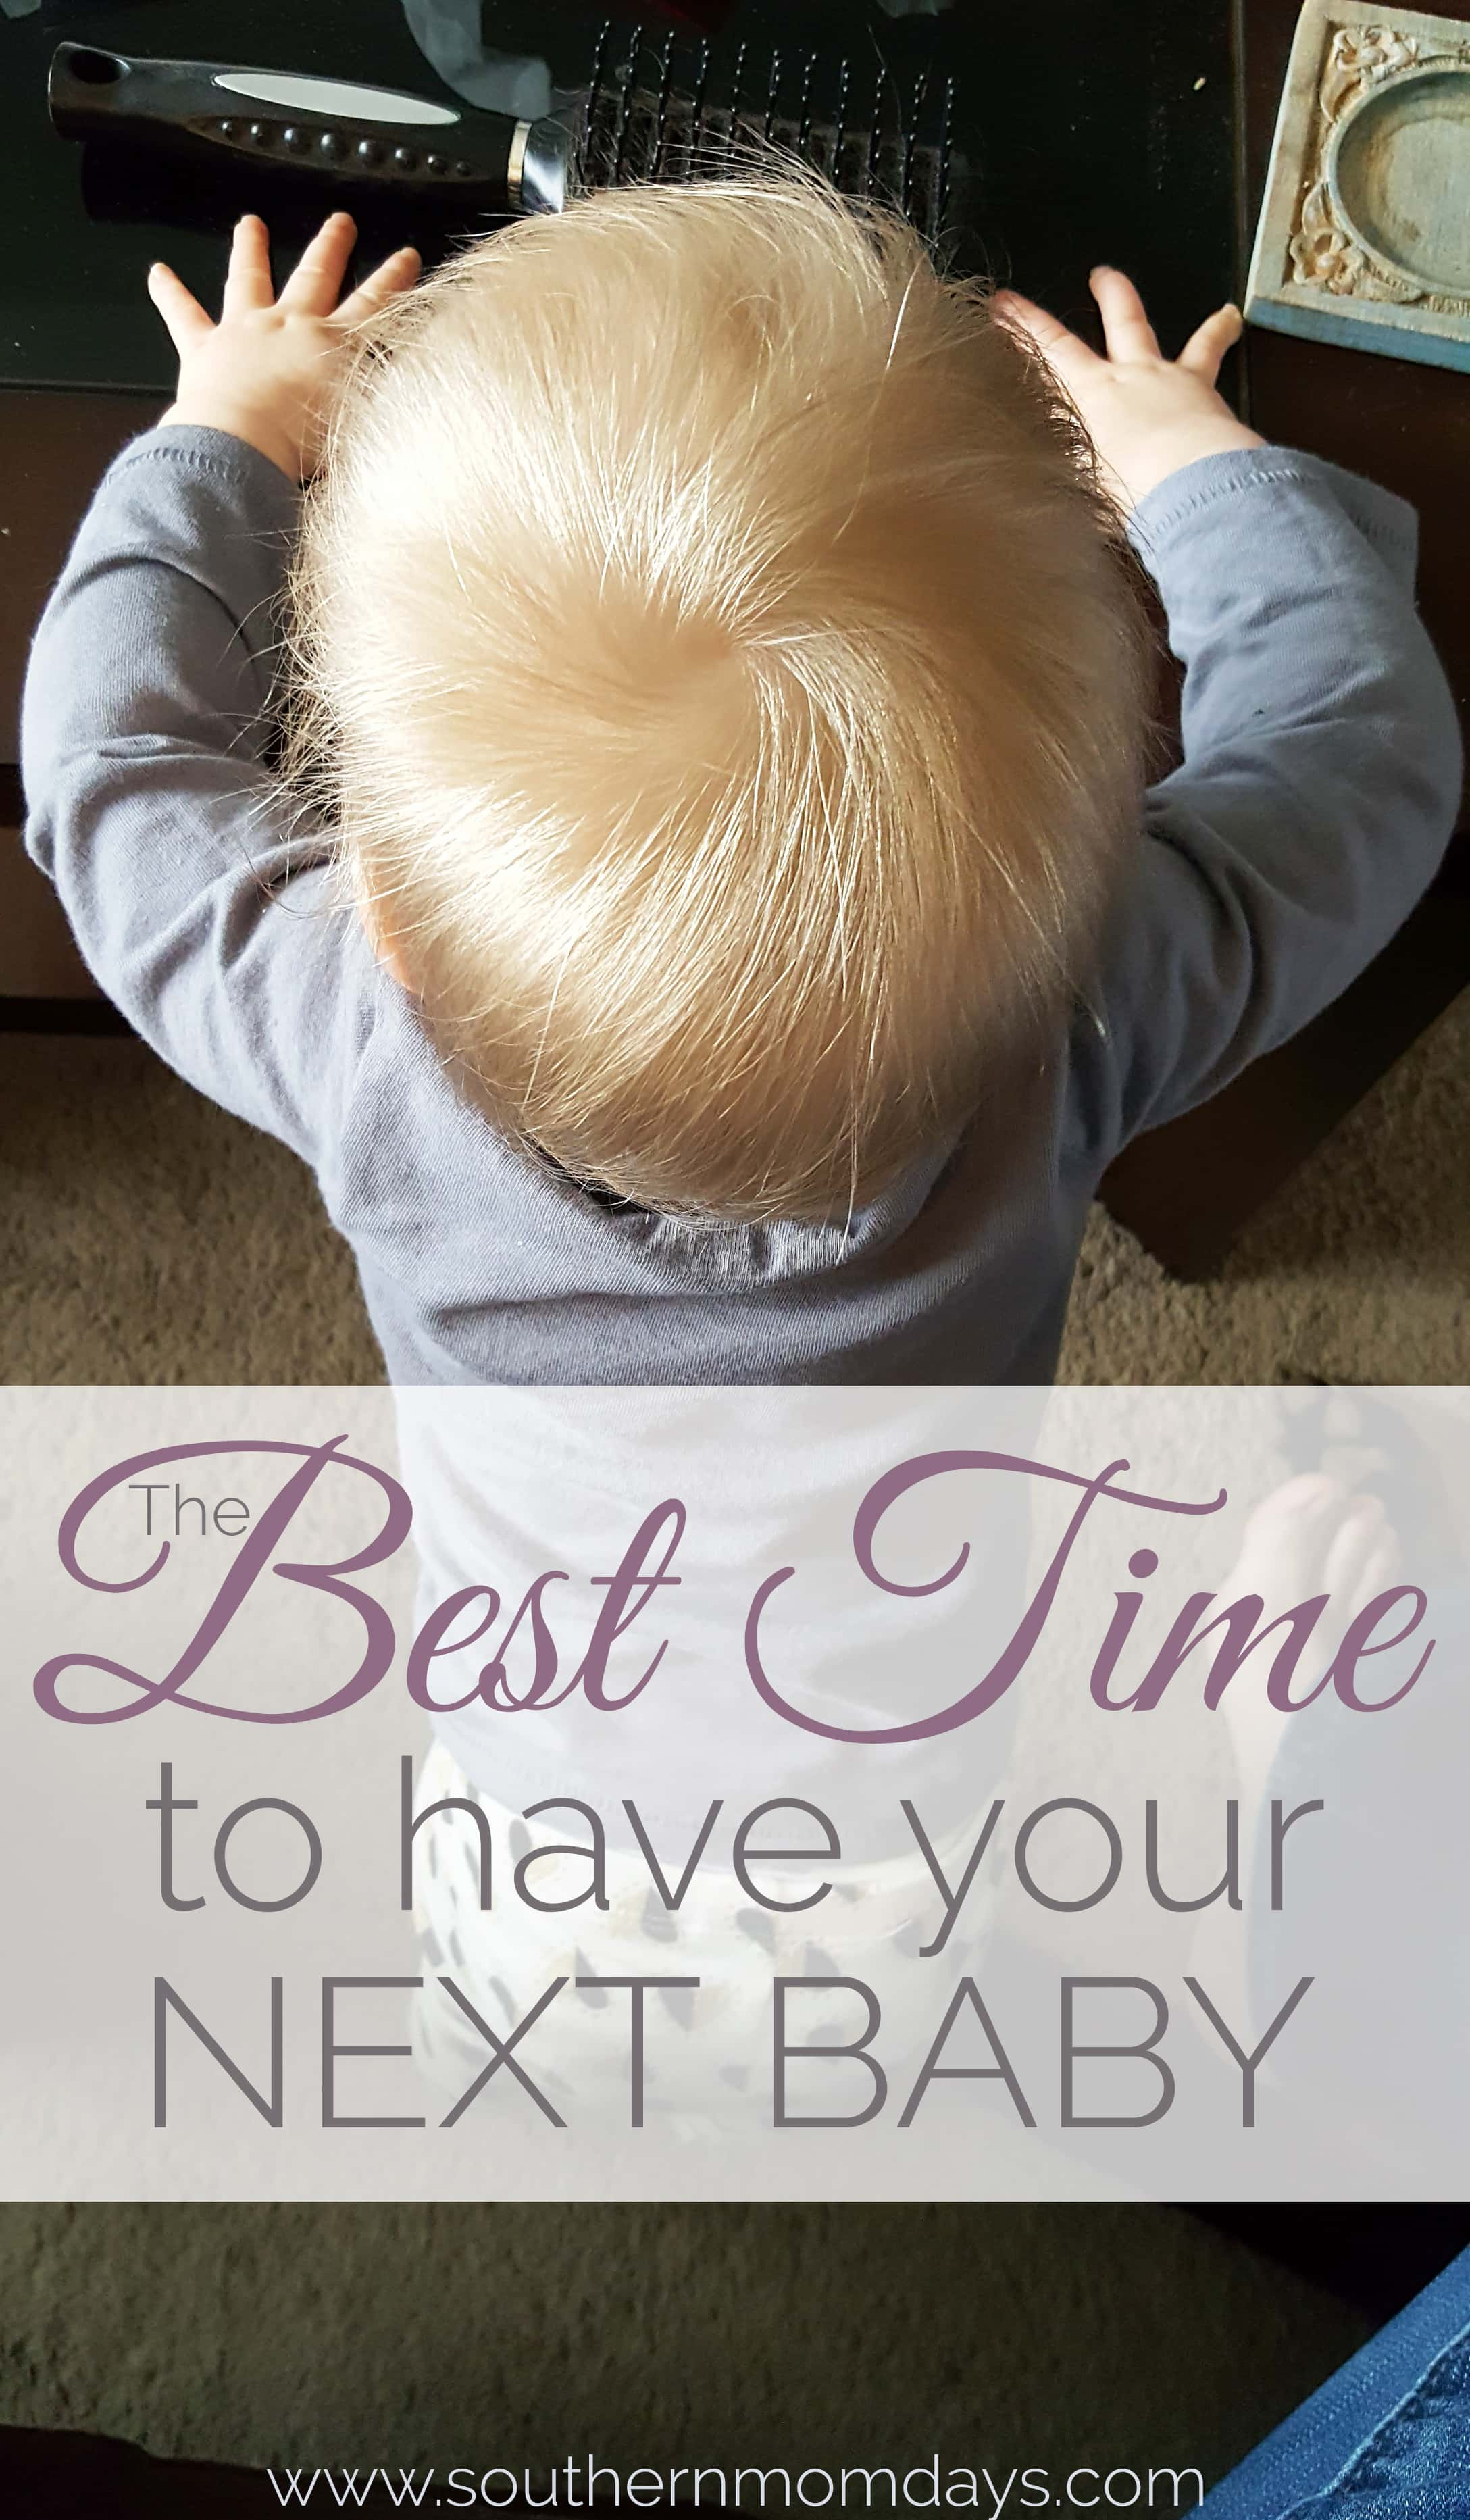 How to find the best time to have your next baby, featured on the Southern Momdays blog